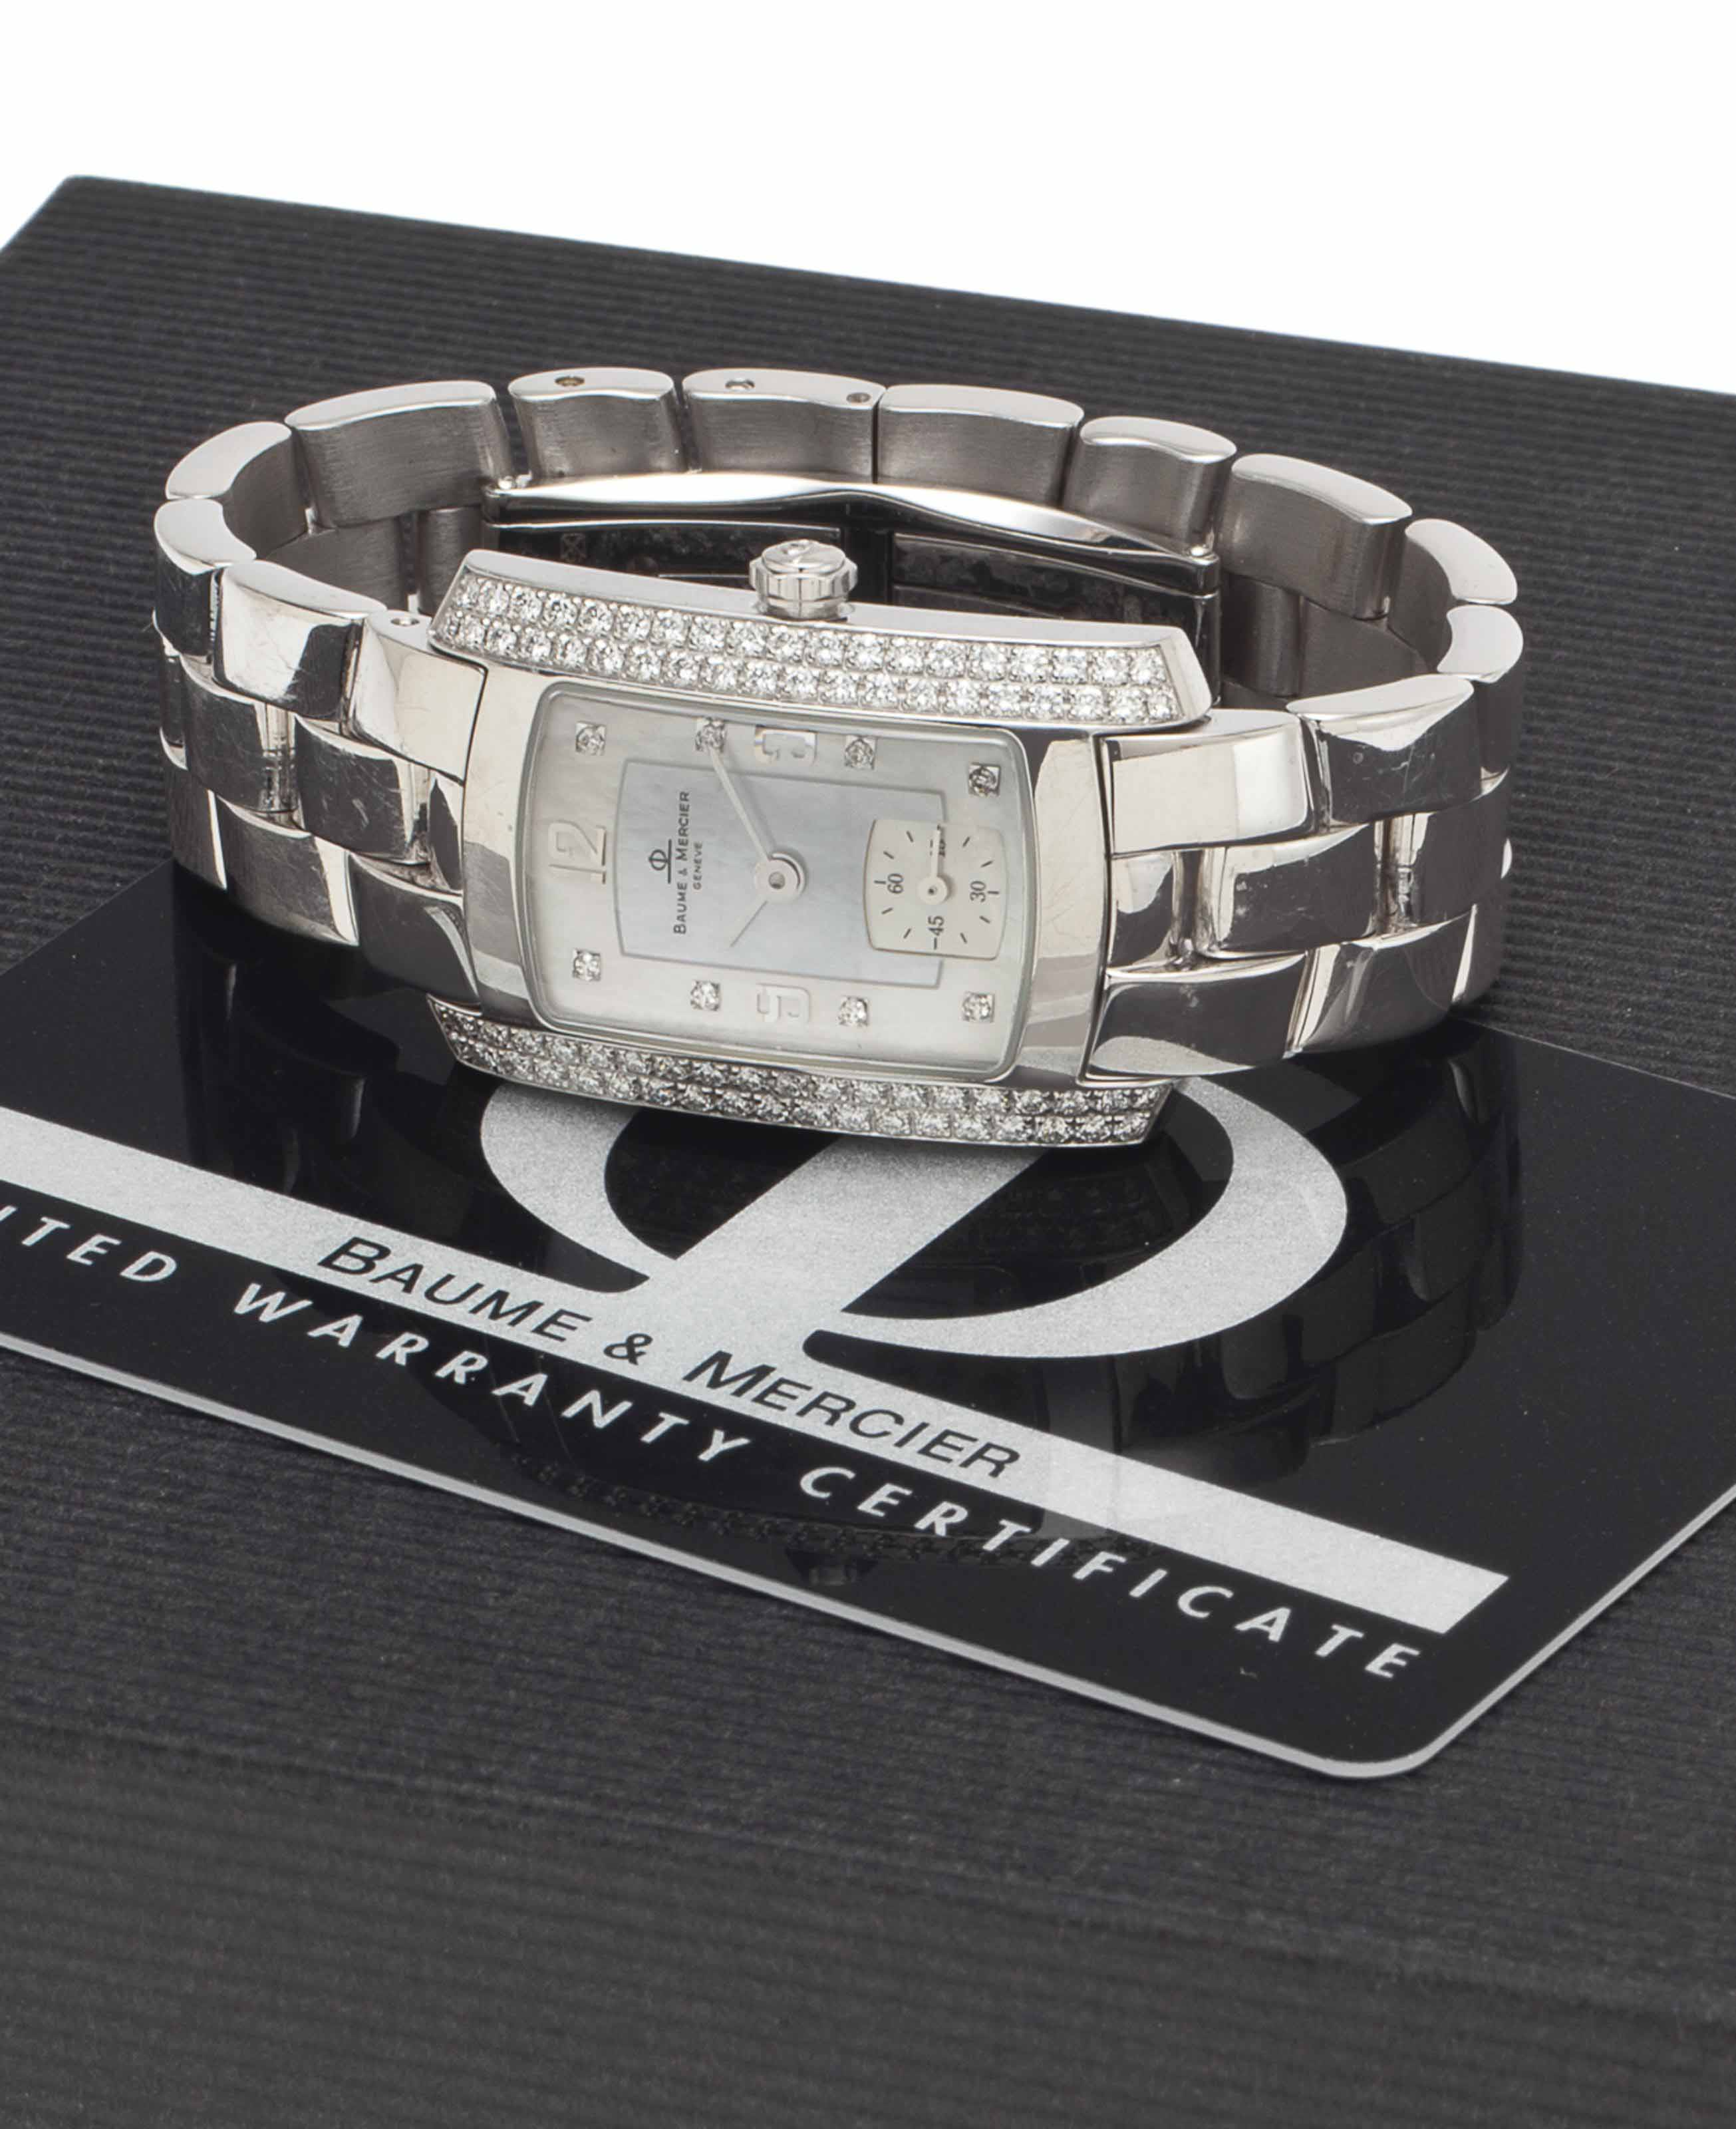 Baume & Mercier. A Lady's Fine 18k White Gold, Mother-of-Pearl and Diamond-set Wristwatch with Bracelet